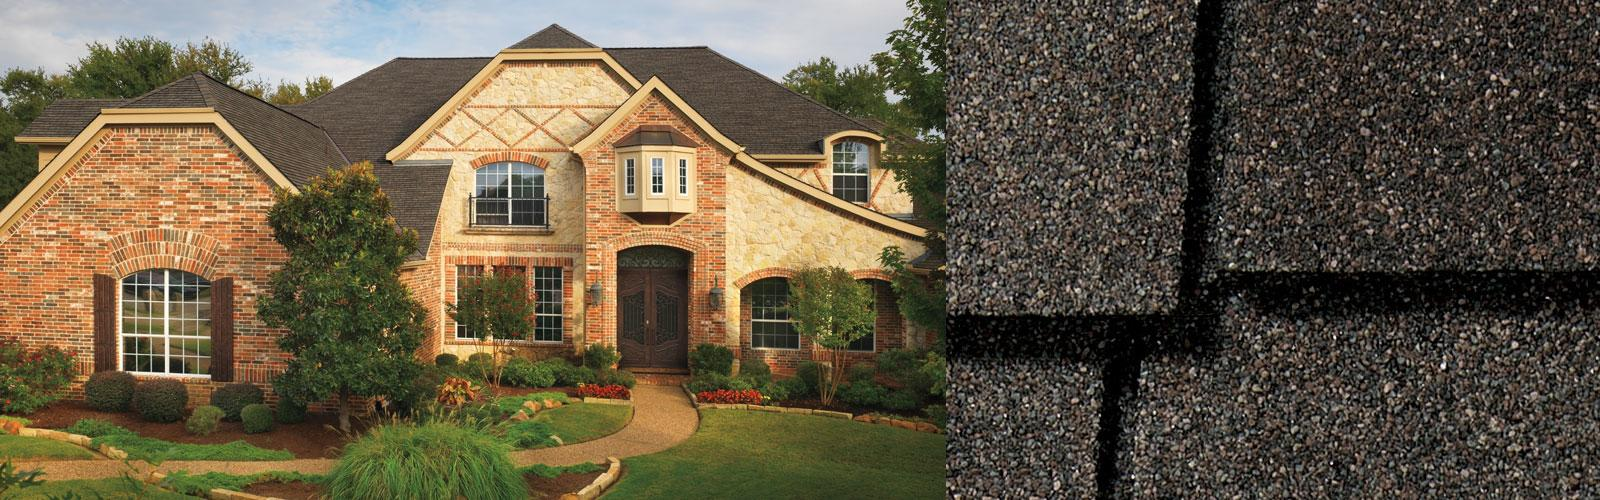 Orange County Roofing And Siding Images